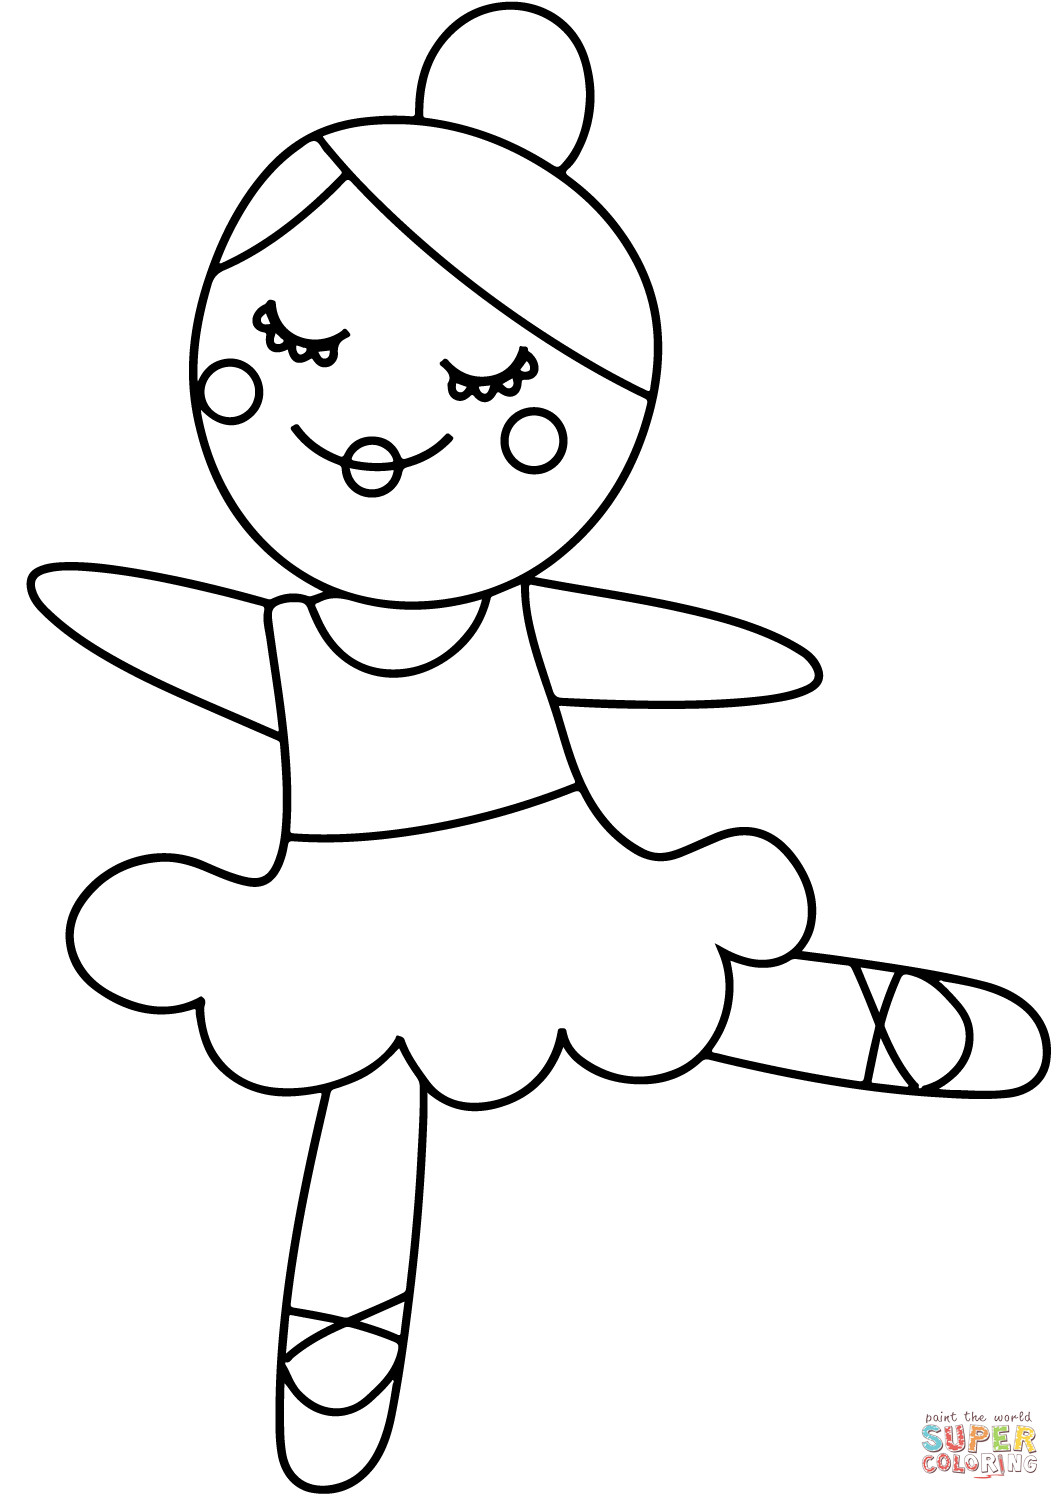 Best ideas about Ballerina Coloring Pages For Girls . Save or Pin Cartoon Ballerina coloring page Now.